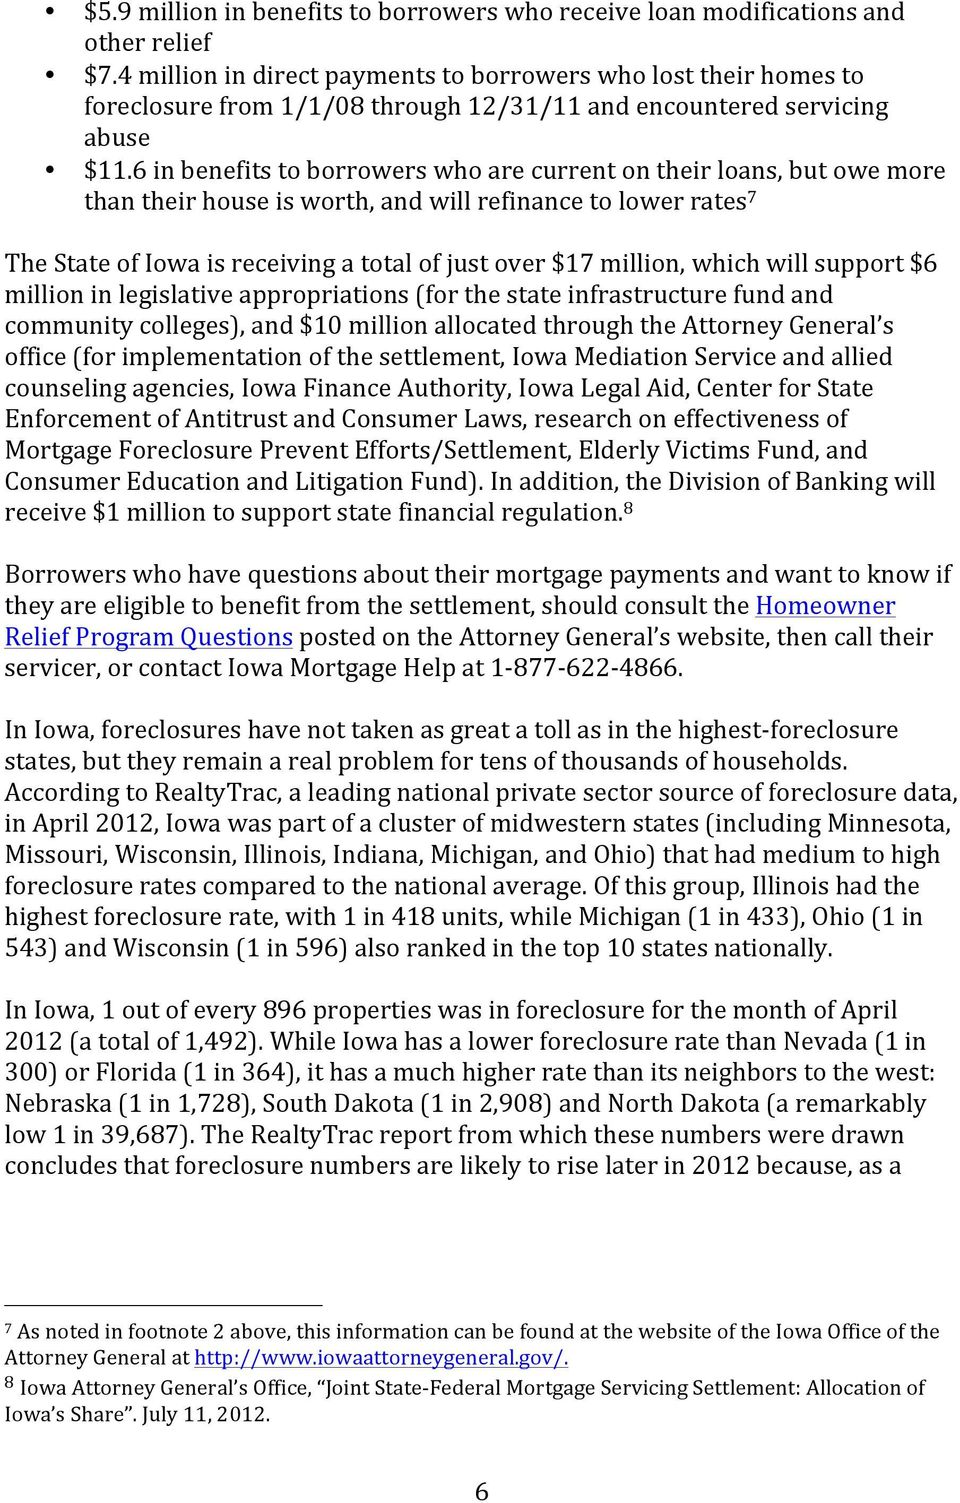 6 in benefits to borrowers who are current on their loans, but owe more than their house is worth, and will refinance to lower rates 7 The State of Iowa is receiving a total of just over $17 million,